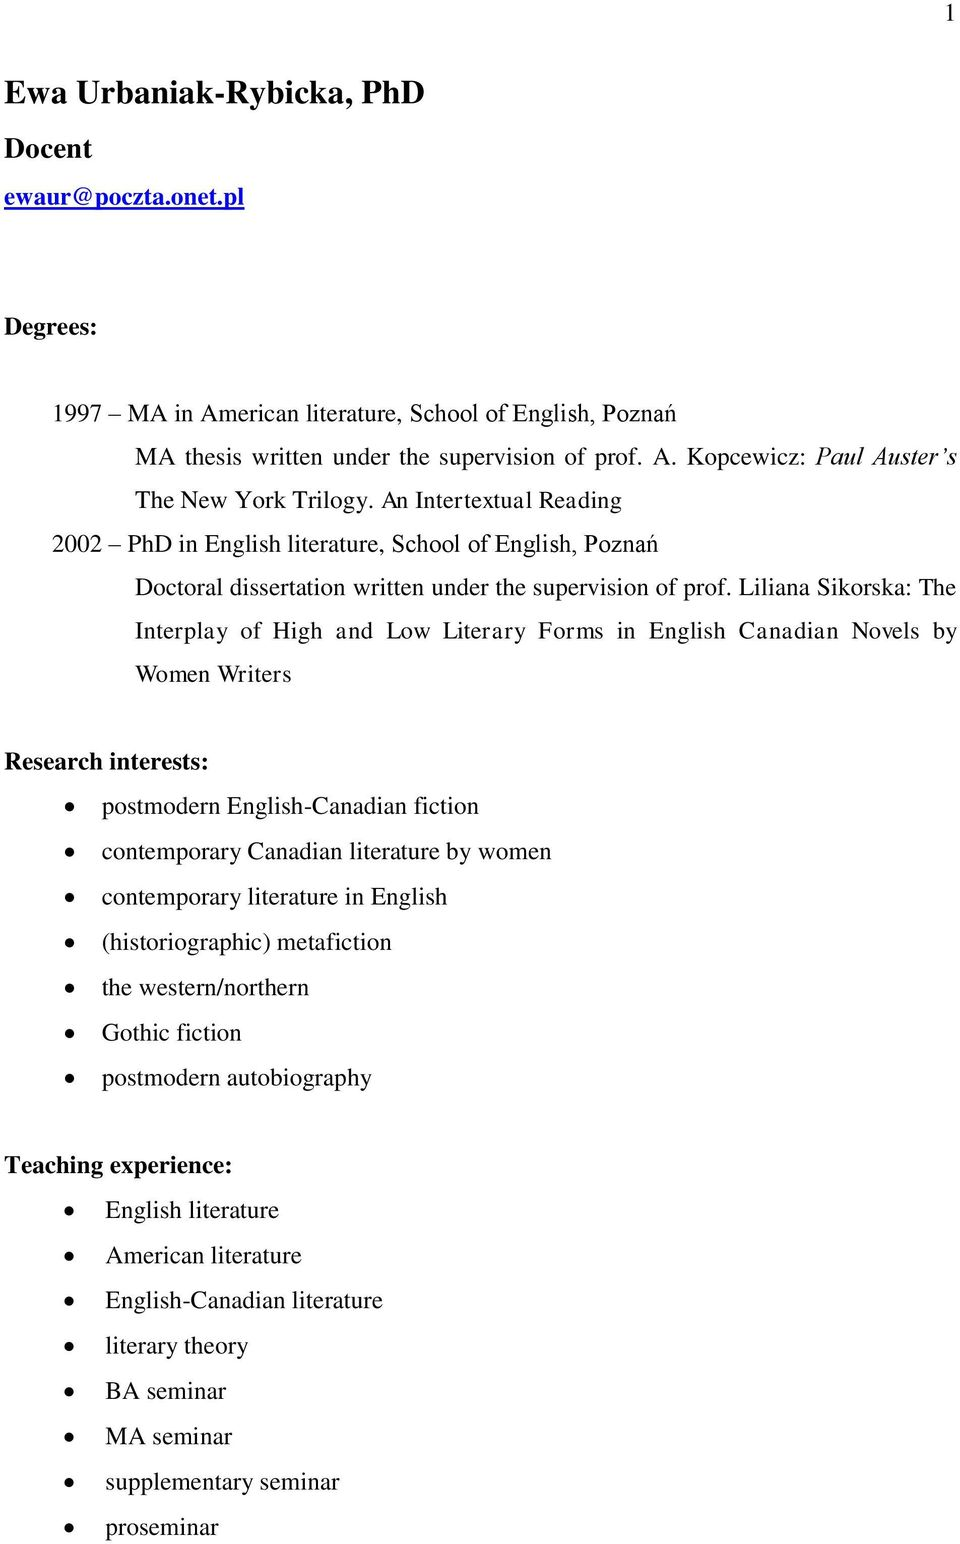 Liliana Sikorska: The Interplay of High and Low Literary Forms in English Canadian Novels by Women Writers Research interests: postmodern English-Canadian fiction contemporary Canadian literature by